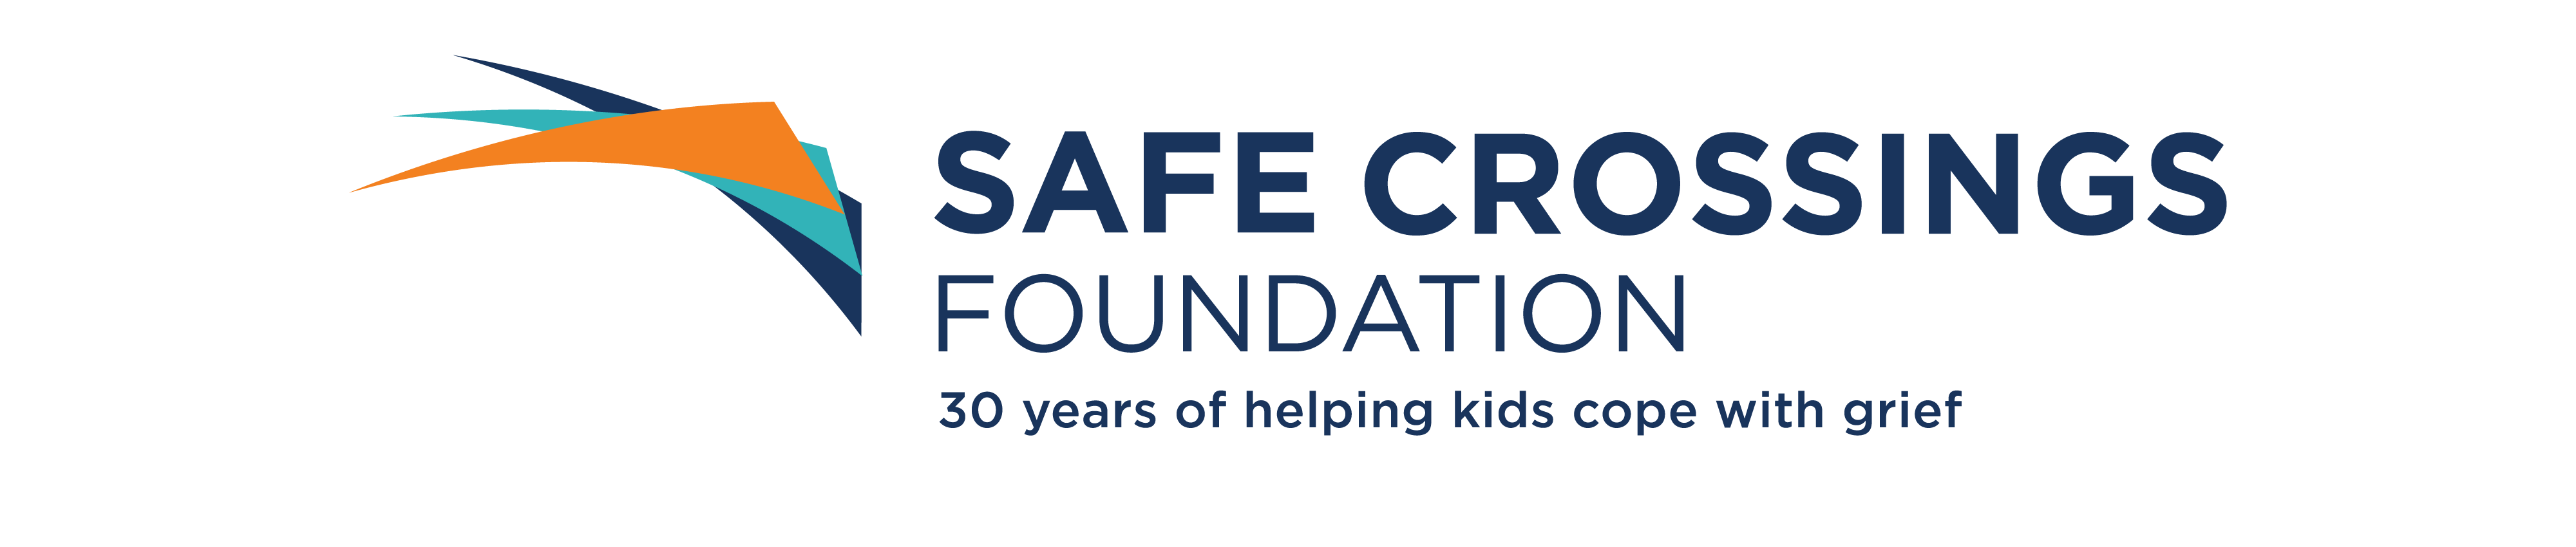 Safe Crossings Foundation Logo